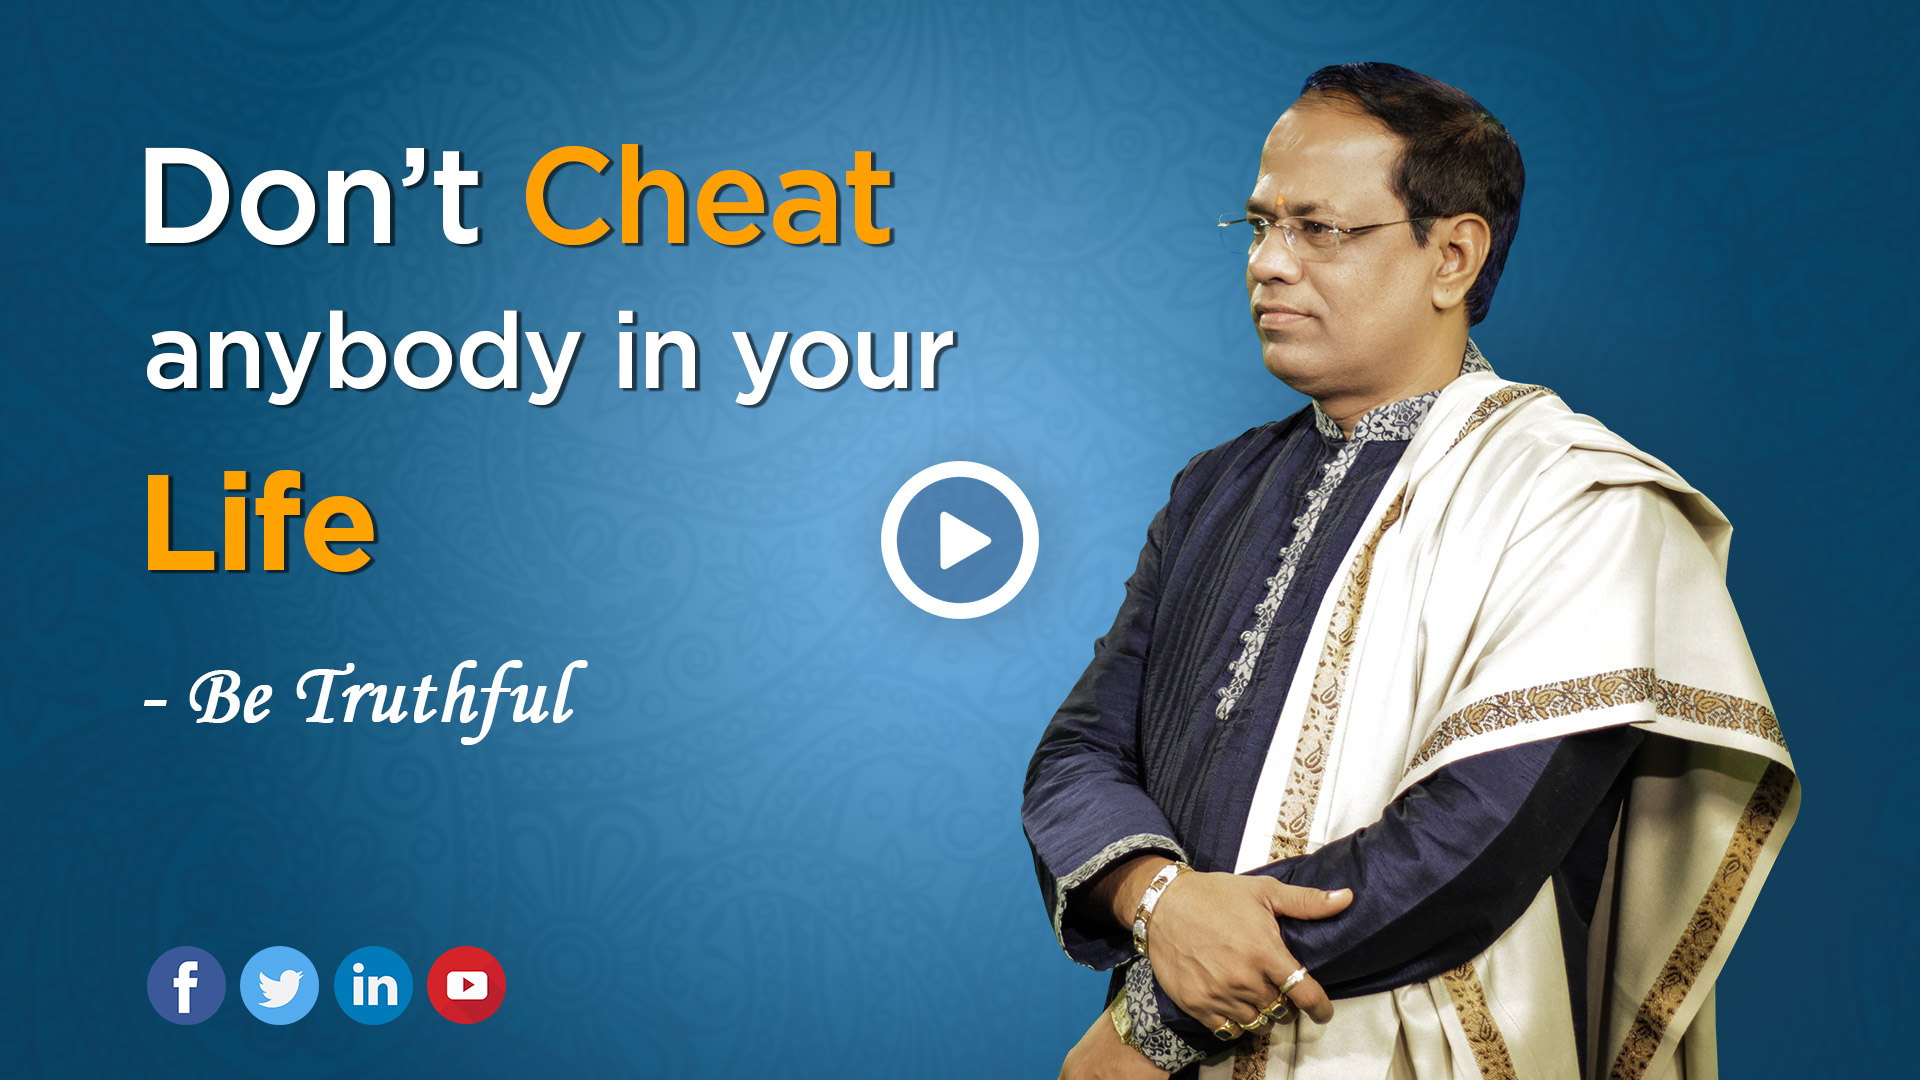 Truthful - Dont Cheat Anybody in Your Life